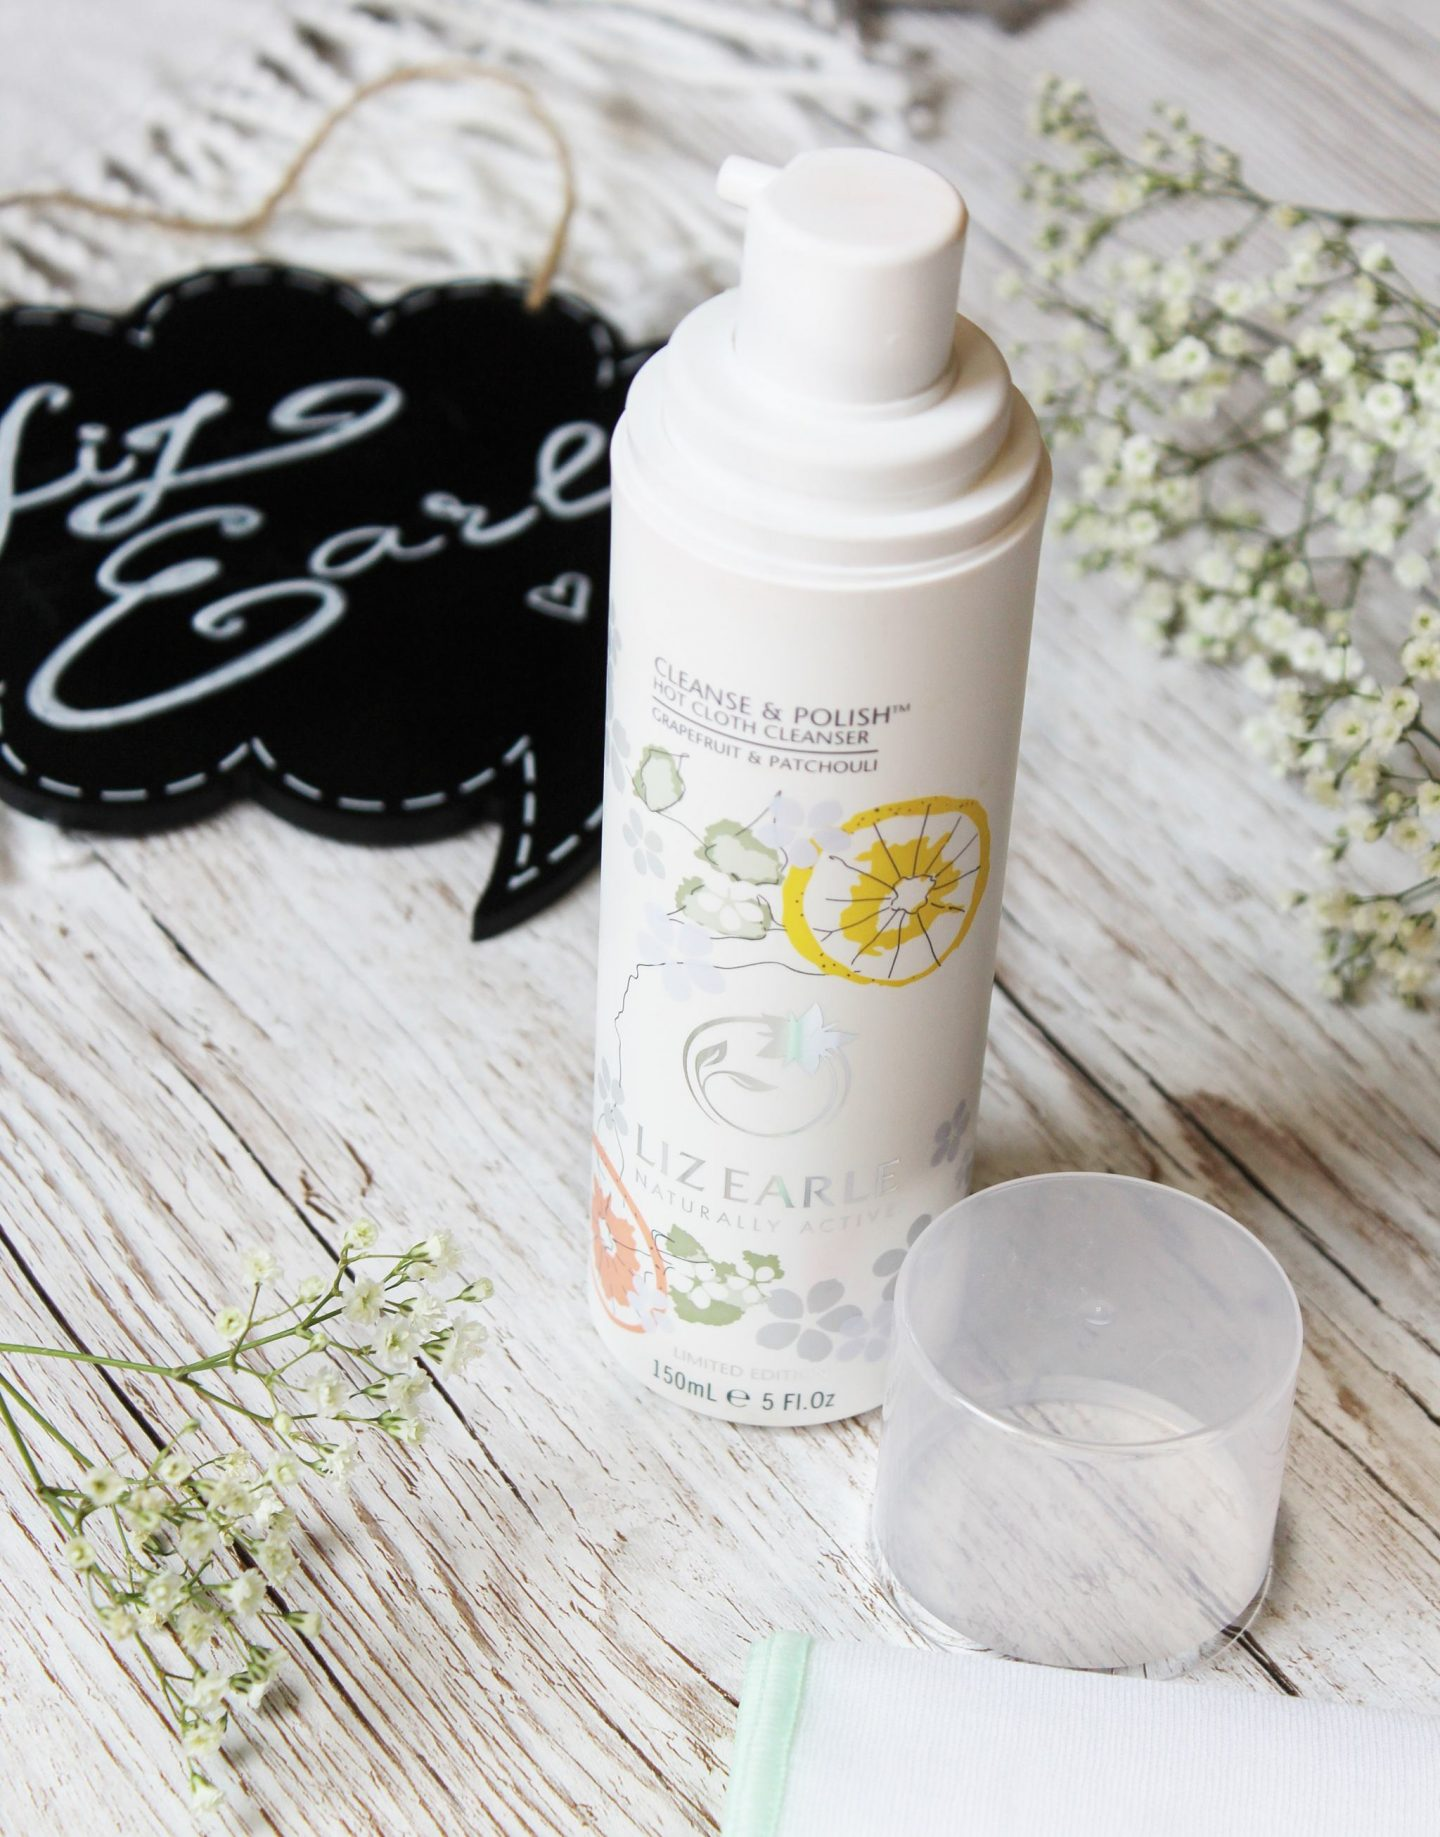 Liz Earle Grapefruit & Patchouli Limited Edition Cleanse & Polish Hot Cloth Cleanser